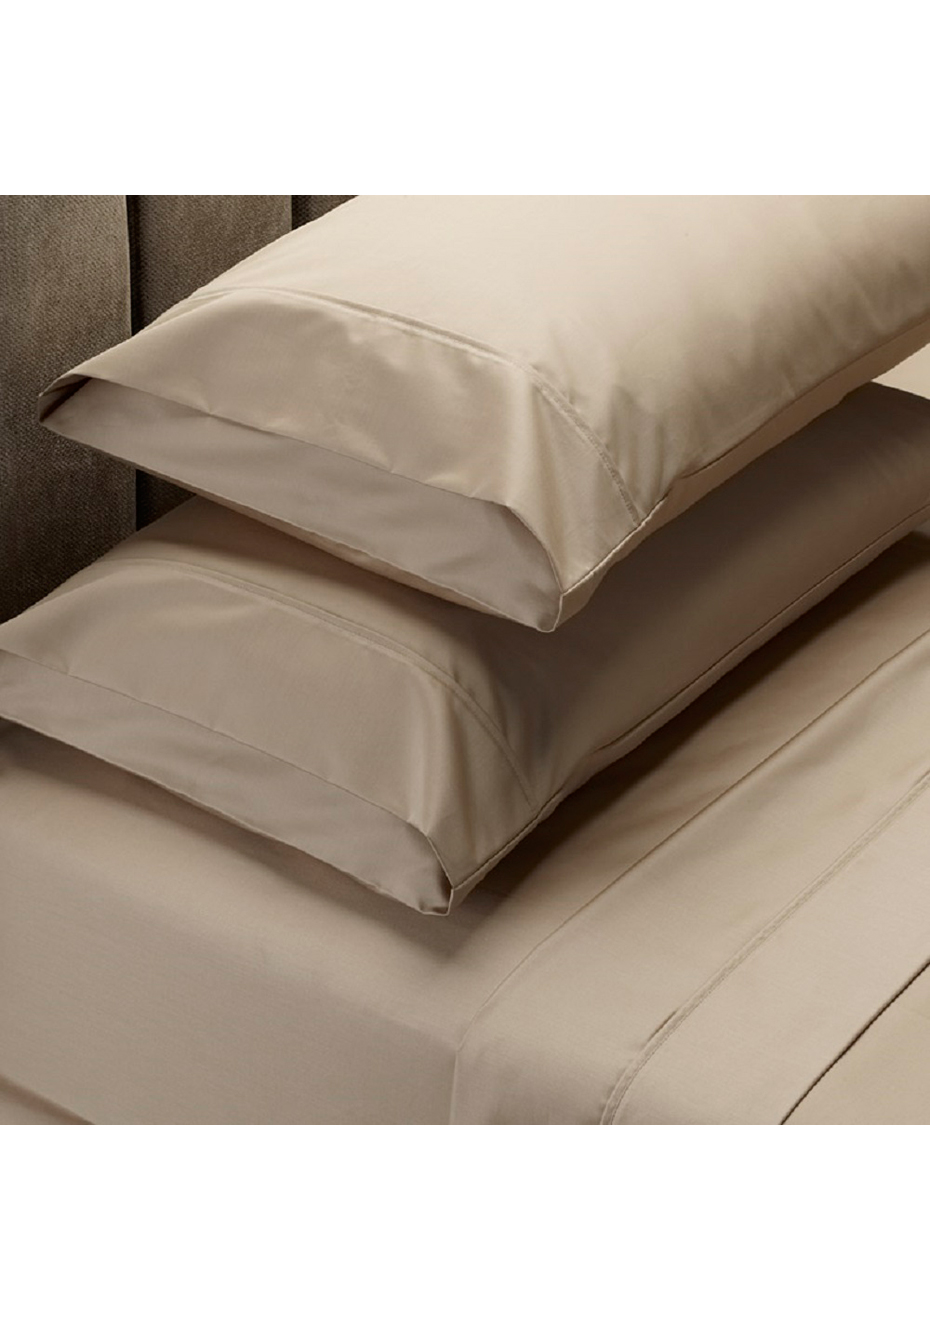 1000 Thread Count Sheets King Park Avenue 1000 Thread Count Egyptian Cotton Sheet Sets